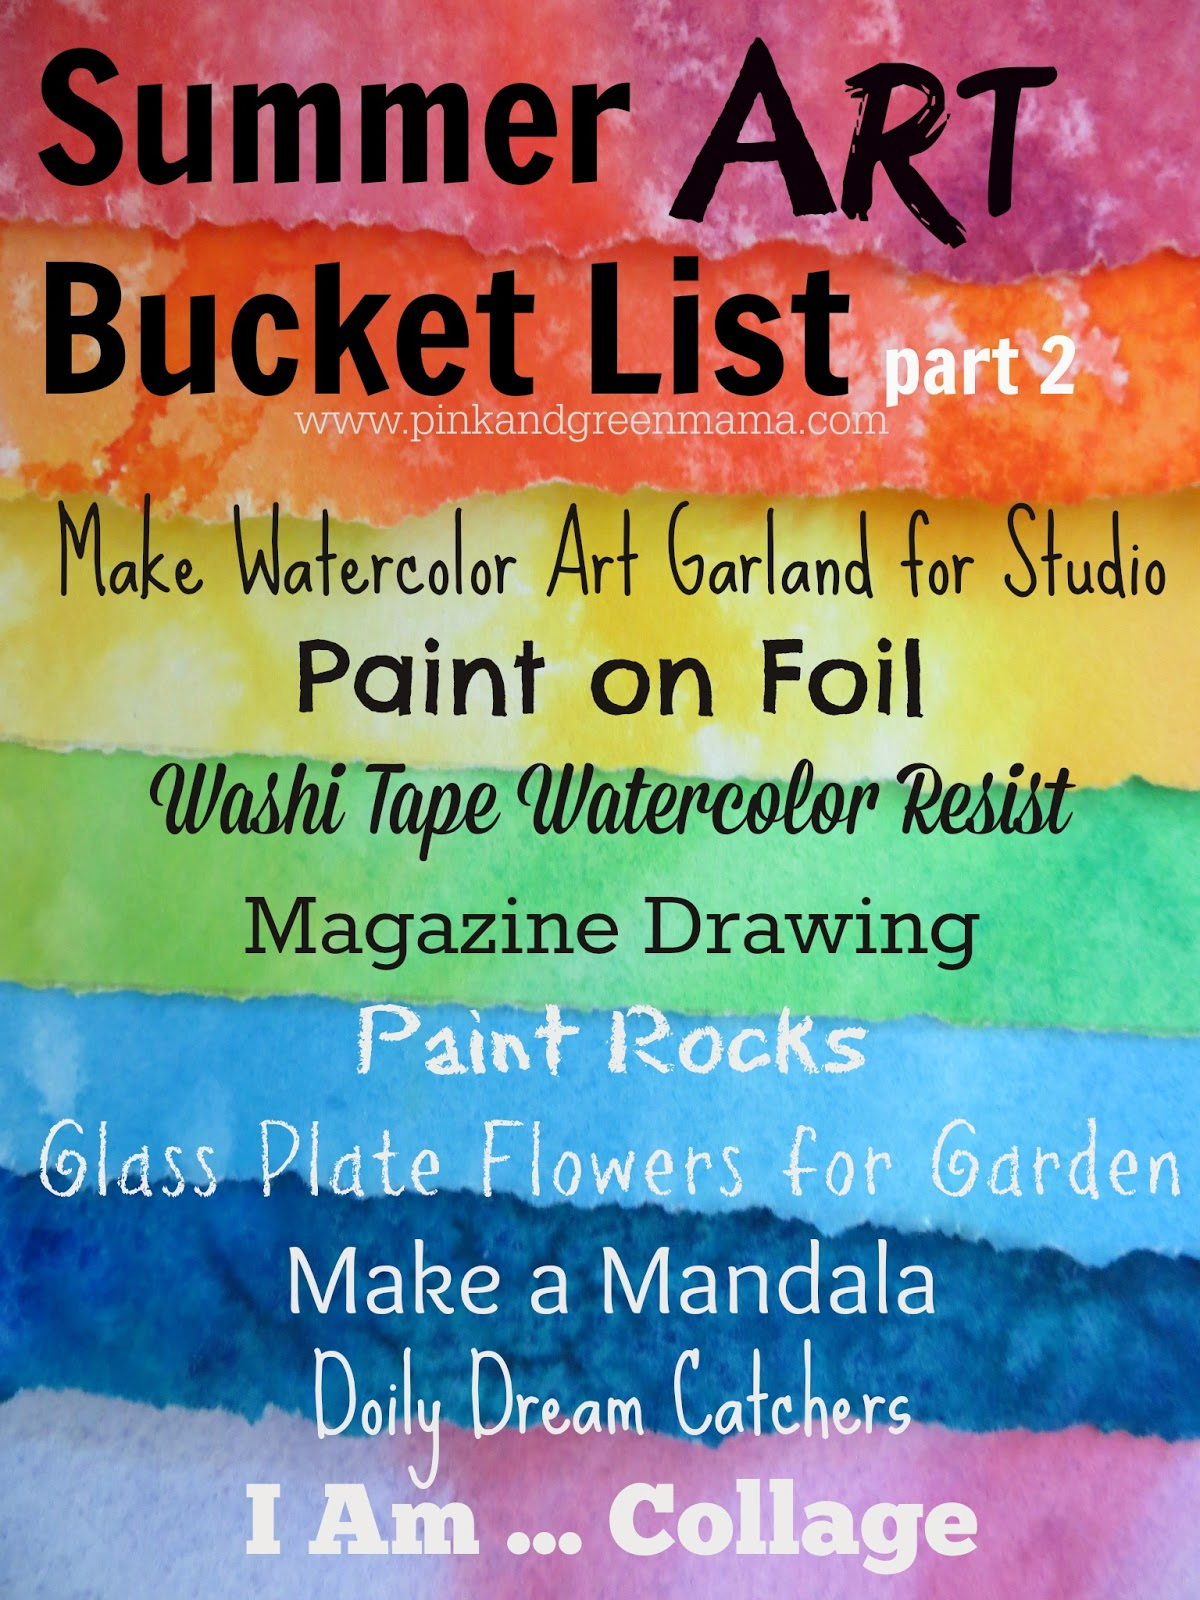 Pink And Green Mama Summer Art Bucket To Do List Part 2 In Case